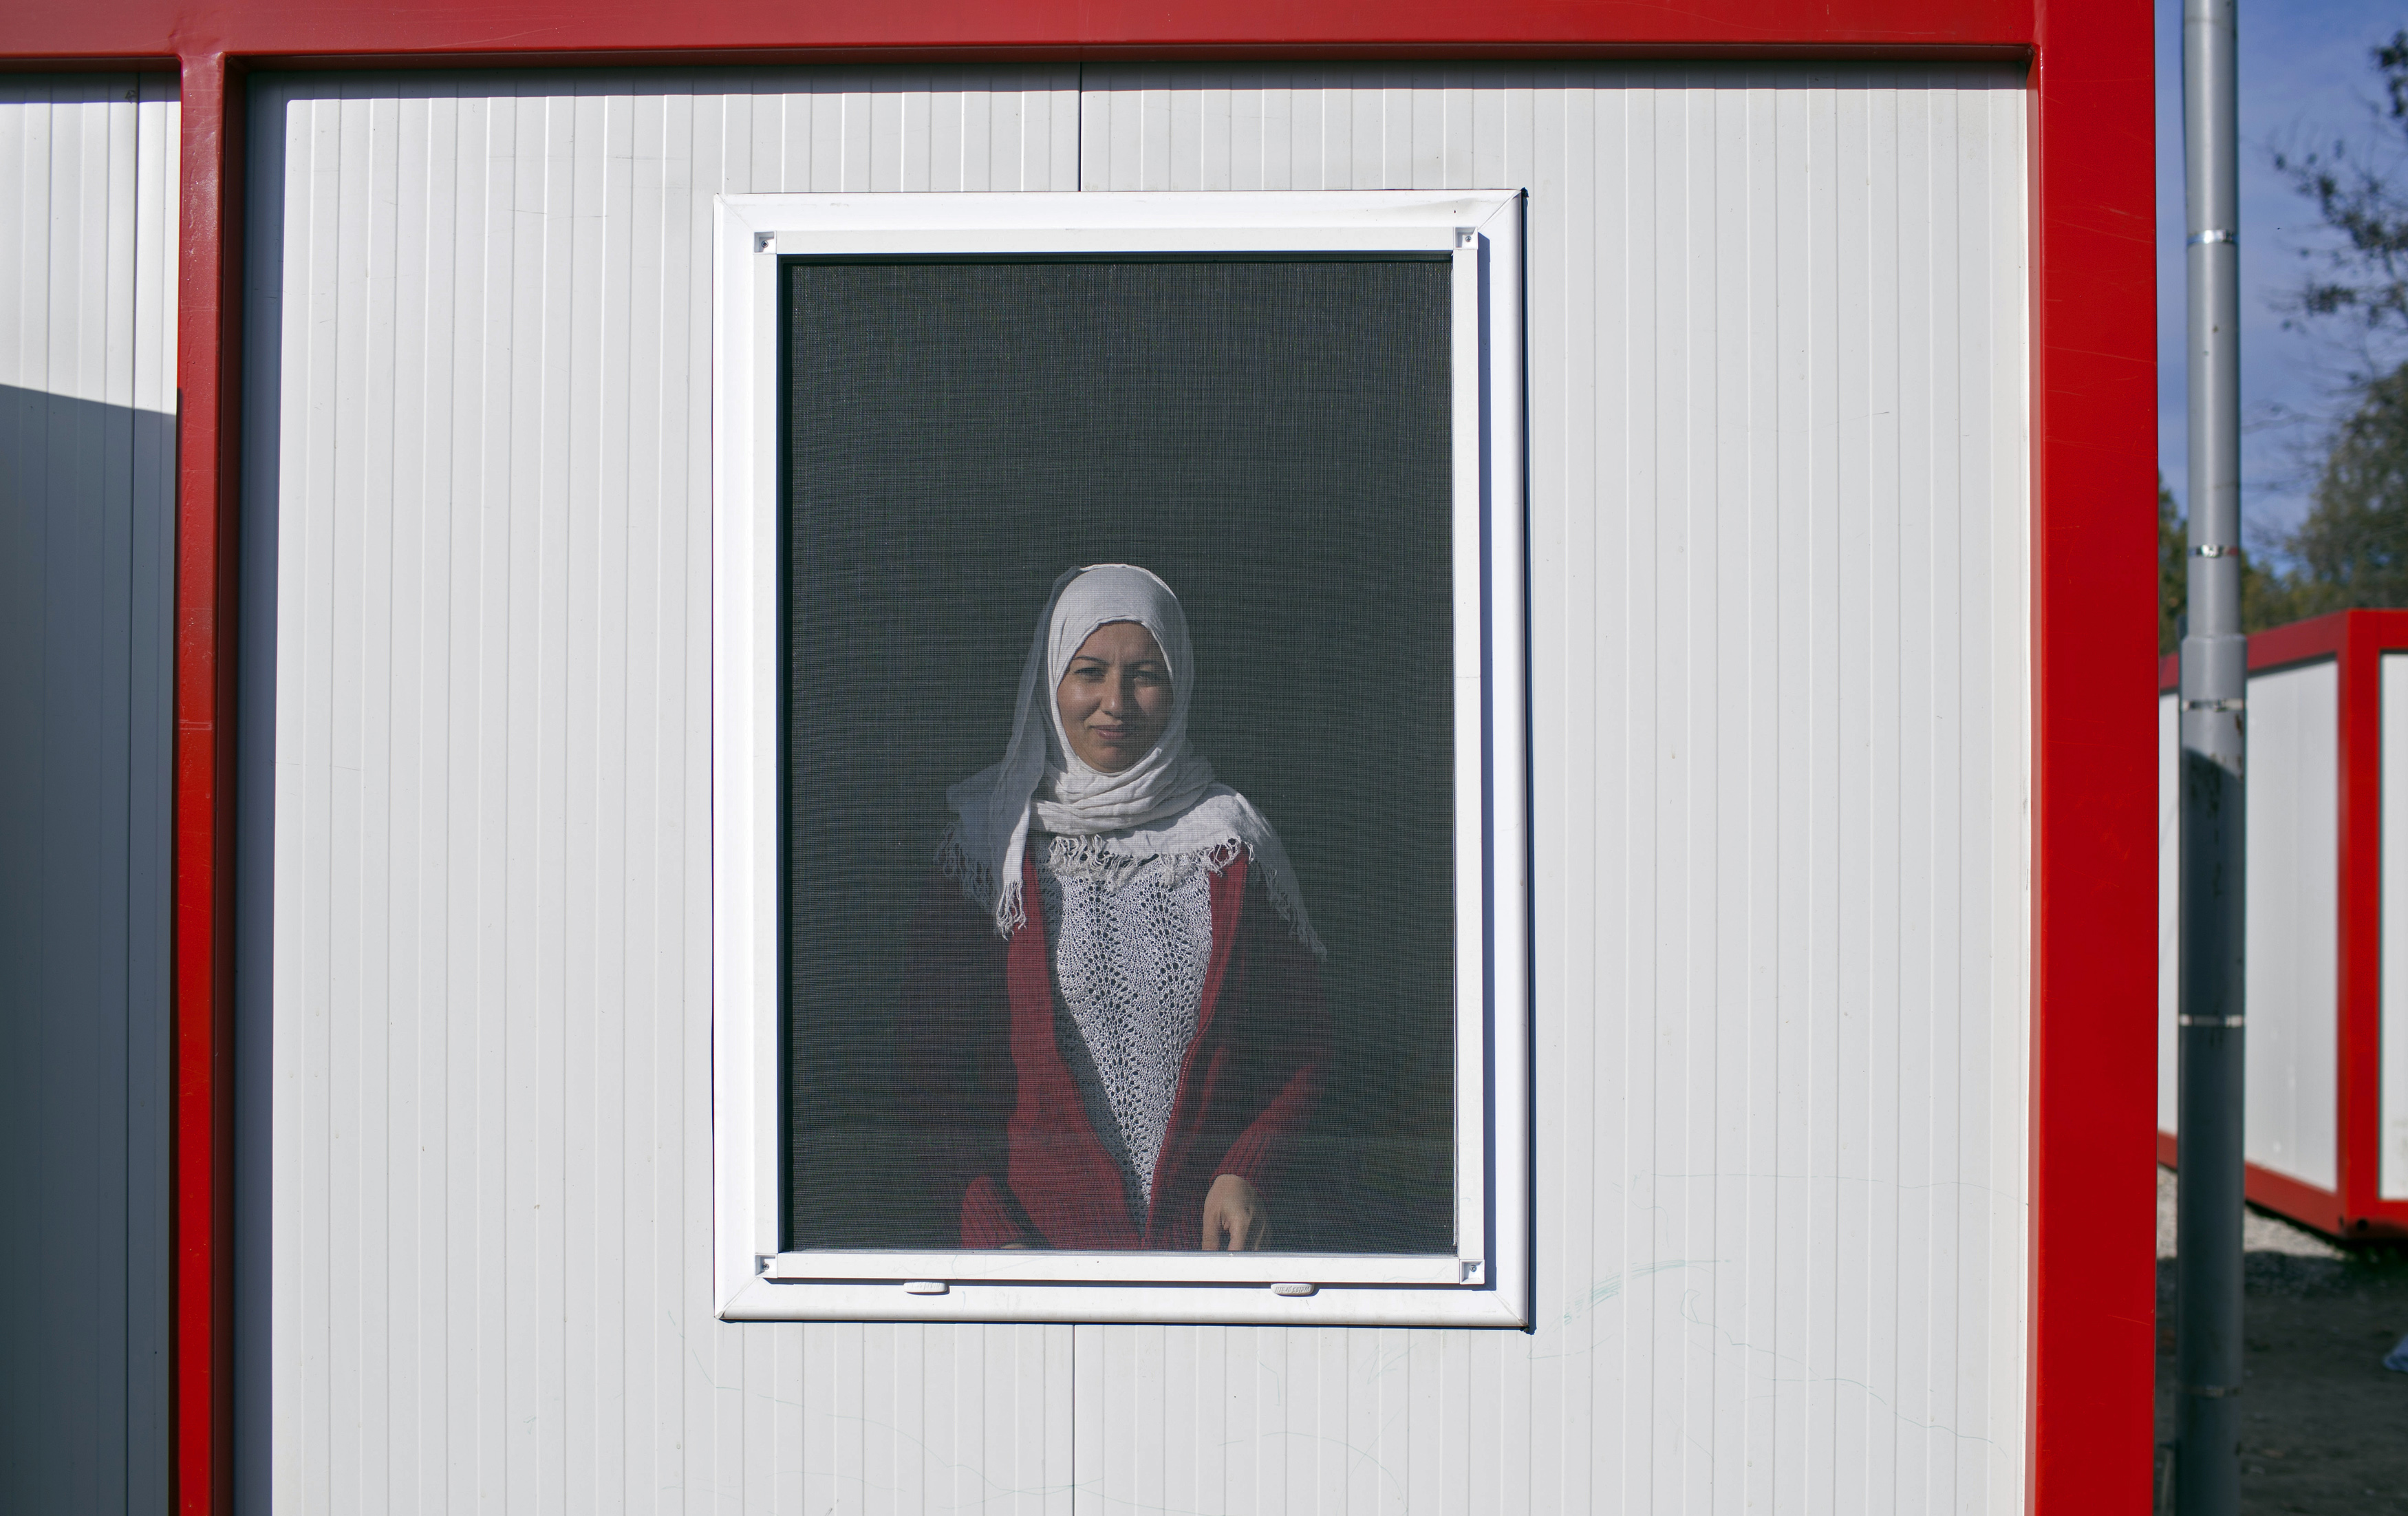 A Syrian woman looks out of the window of a container home at the refugee camp in Harmanli, 280km (174 miles) east of Sofia December 9, 2013. Bulgaria is currently hosting some 11,000 asylum seekers and refugees, around two-thirds of them Syrians. Fo...